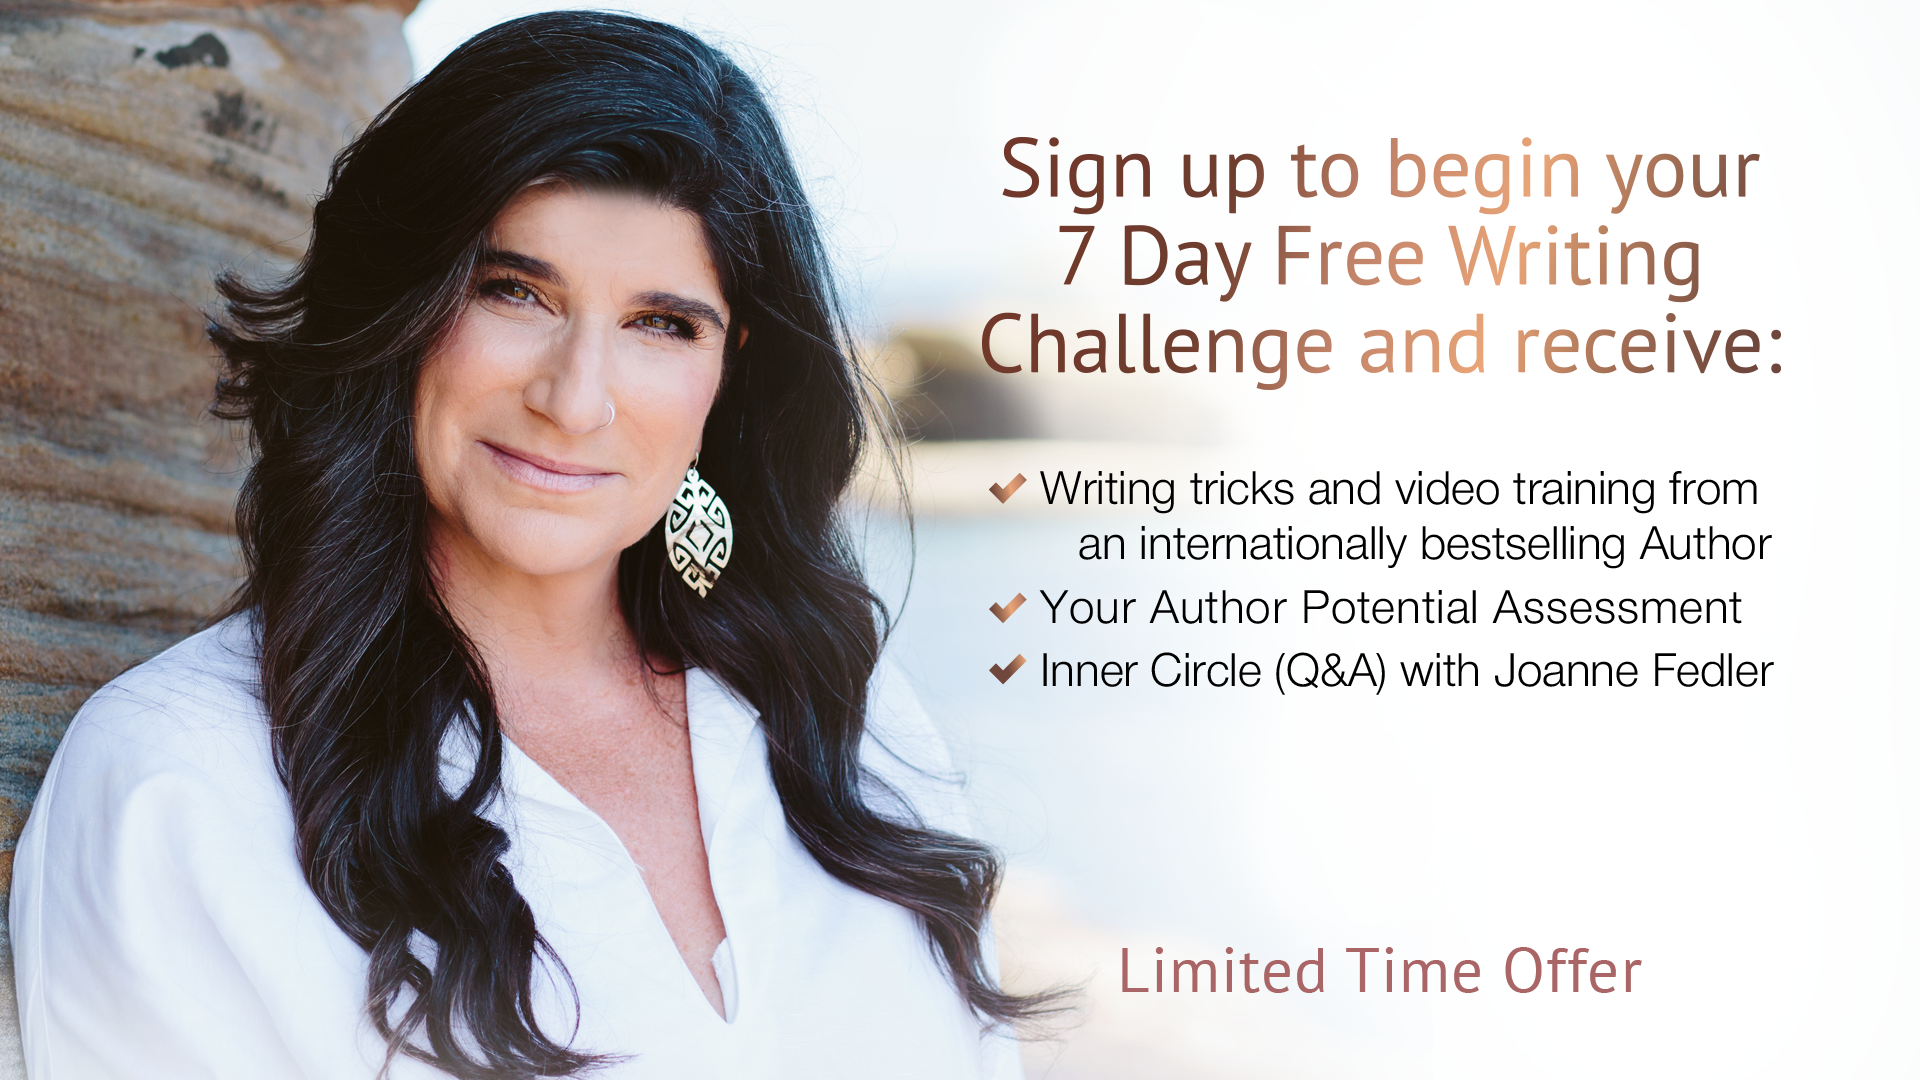 7 Day Free Writing Challenge